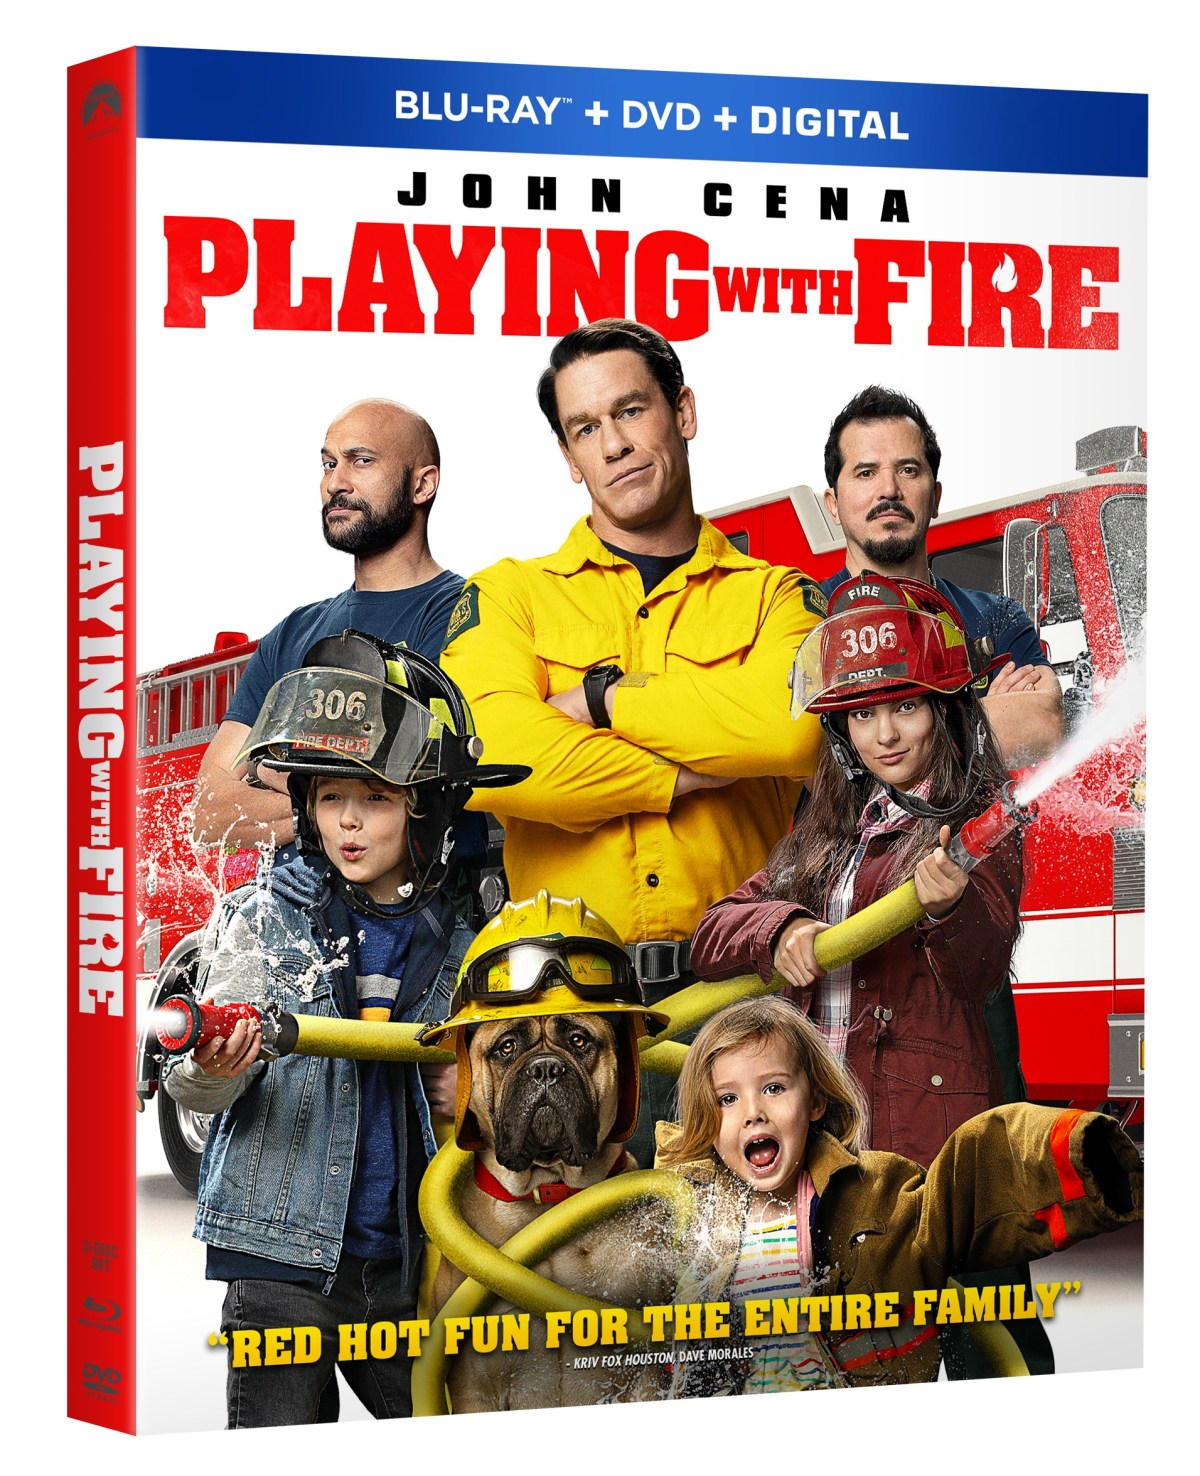 Playing with Fire Blu ray Artwork